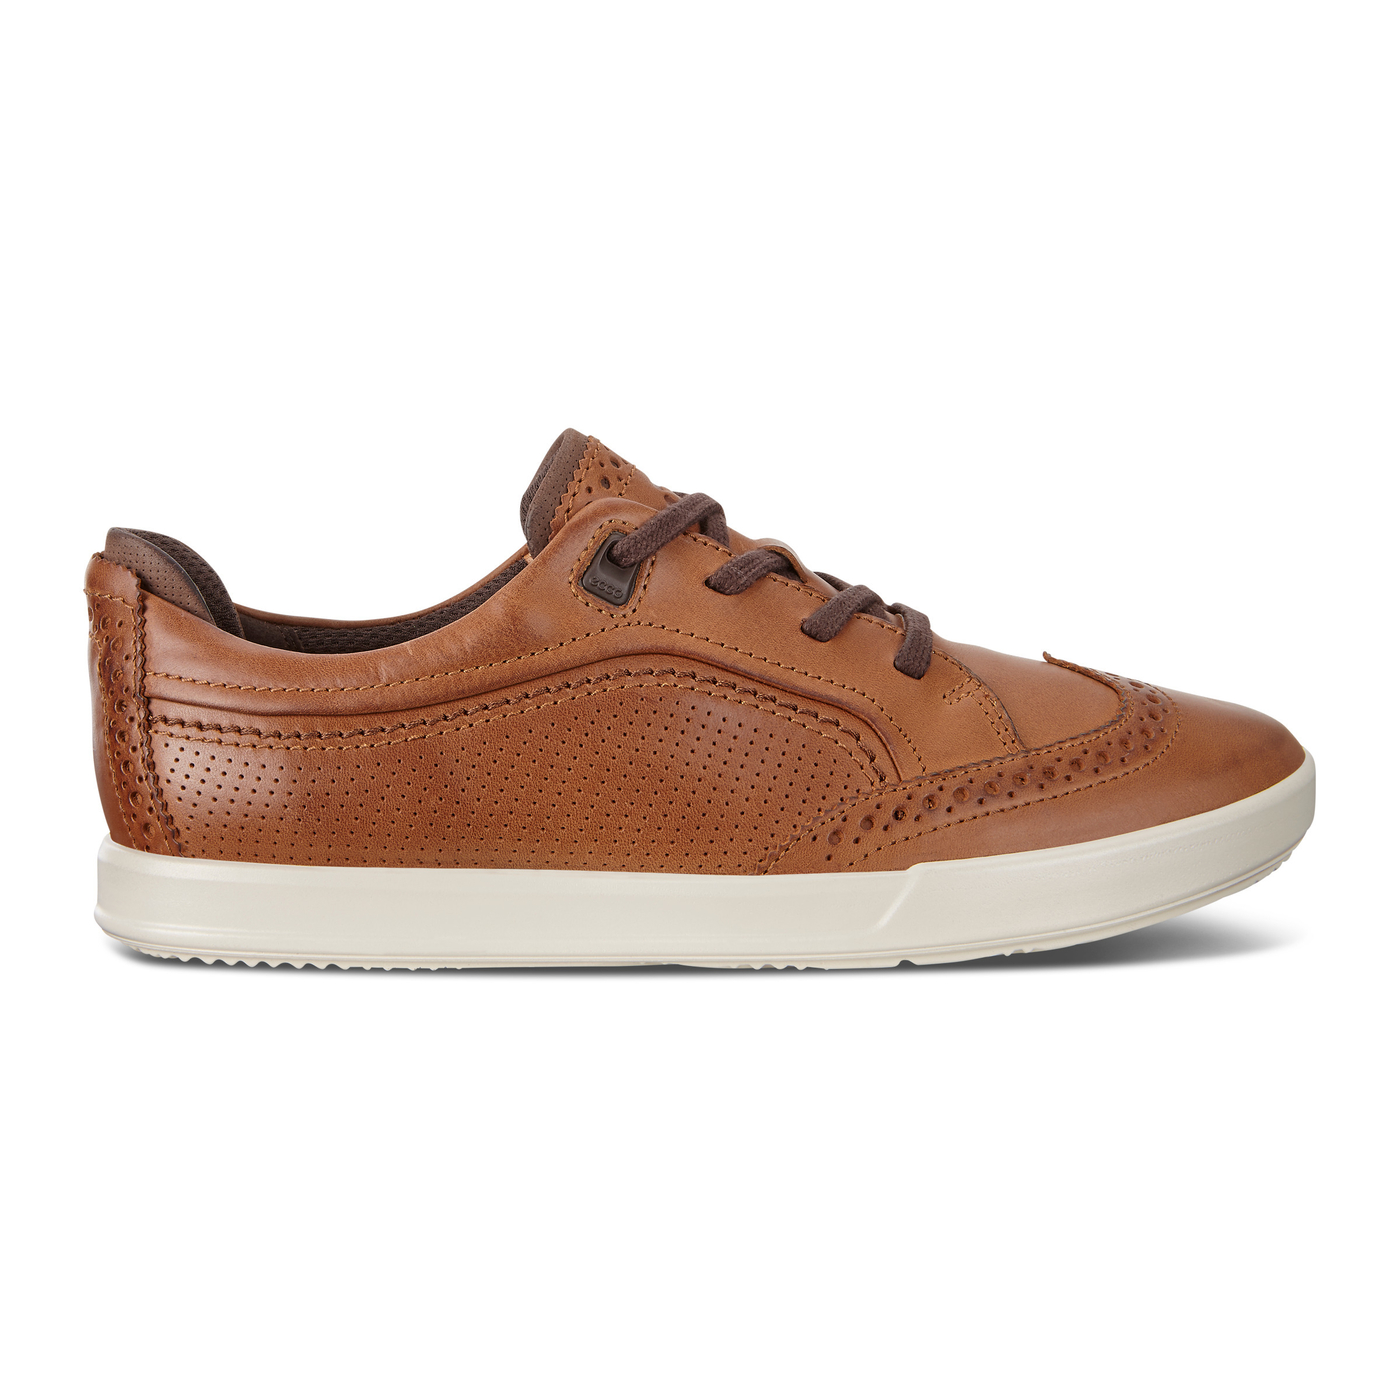 a49b8dc92d ECCO Collin 2.0 Men's Perforated Sneakers | ECCO® Shoes